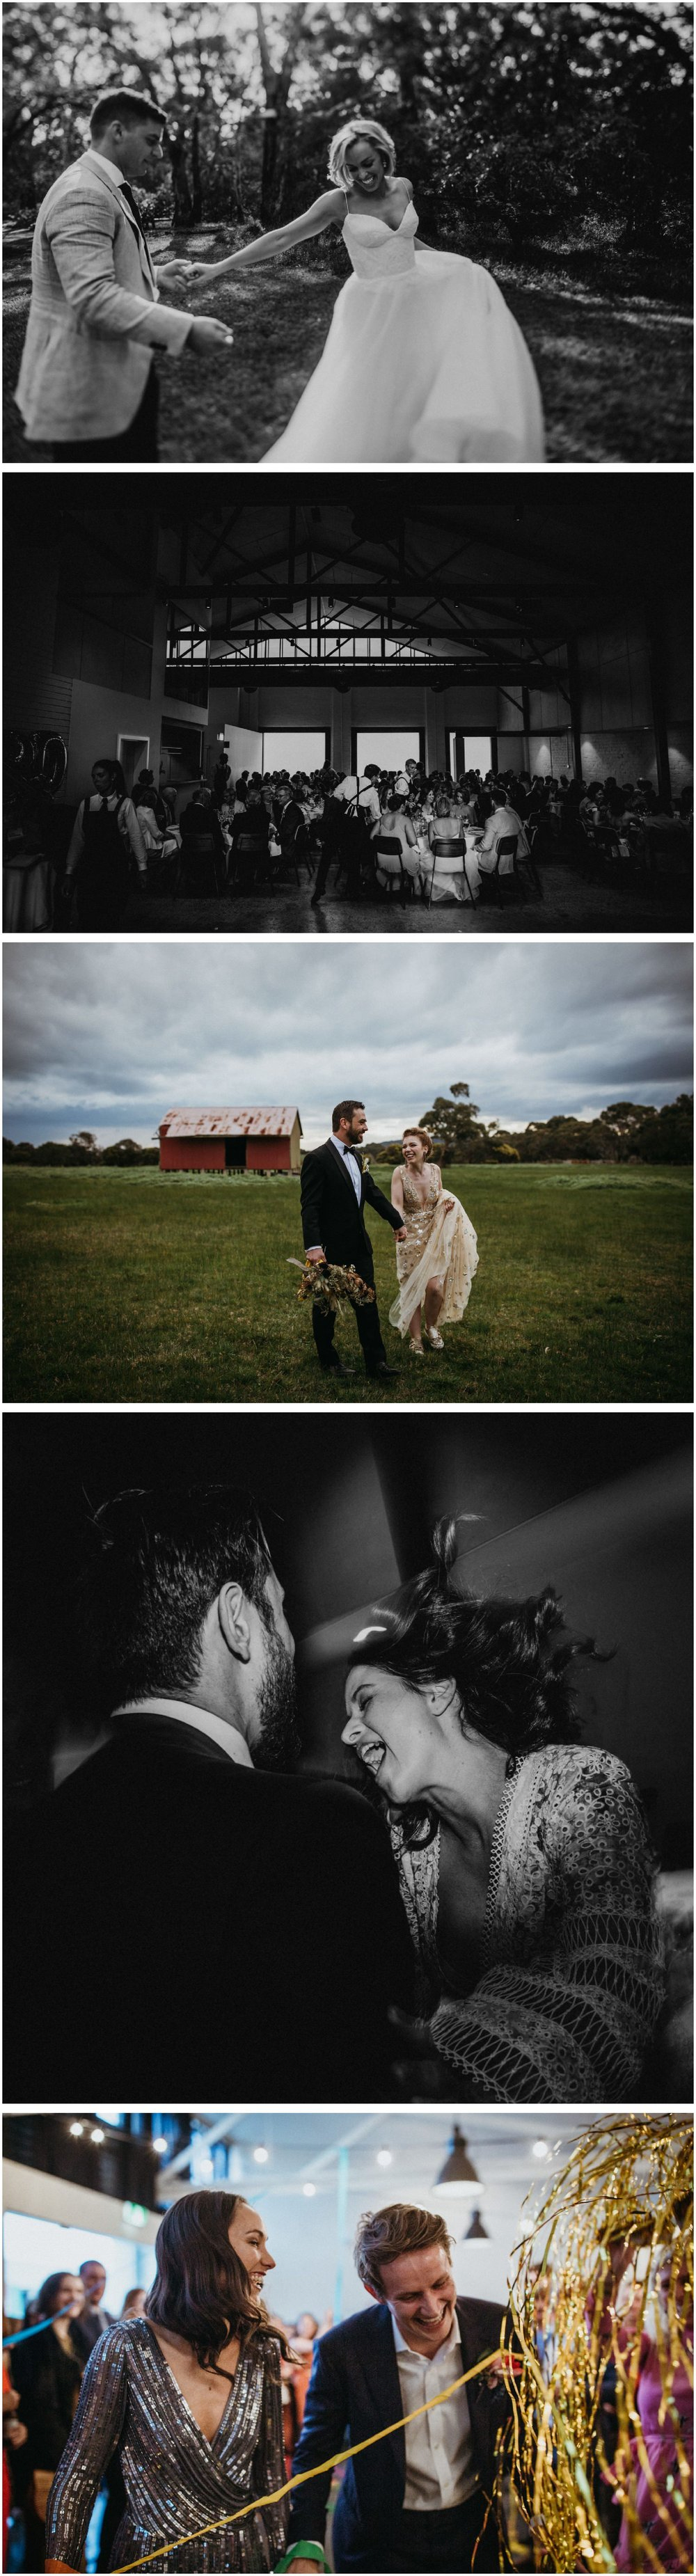 Melbourne Wedding Photographer - 2018 in review -185A1044.jpg